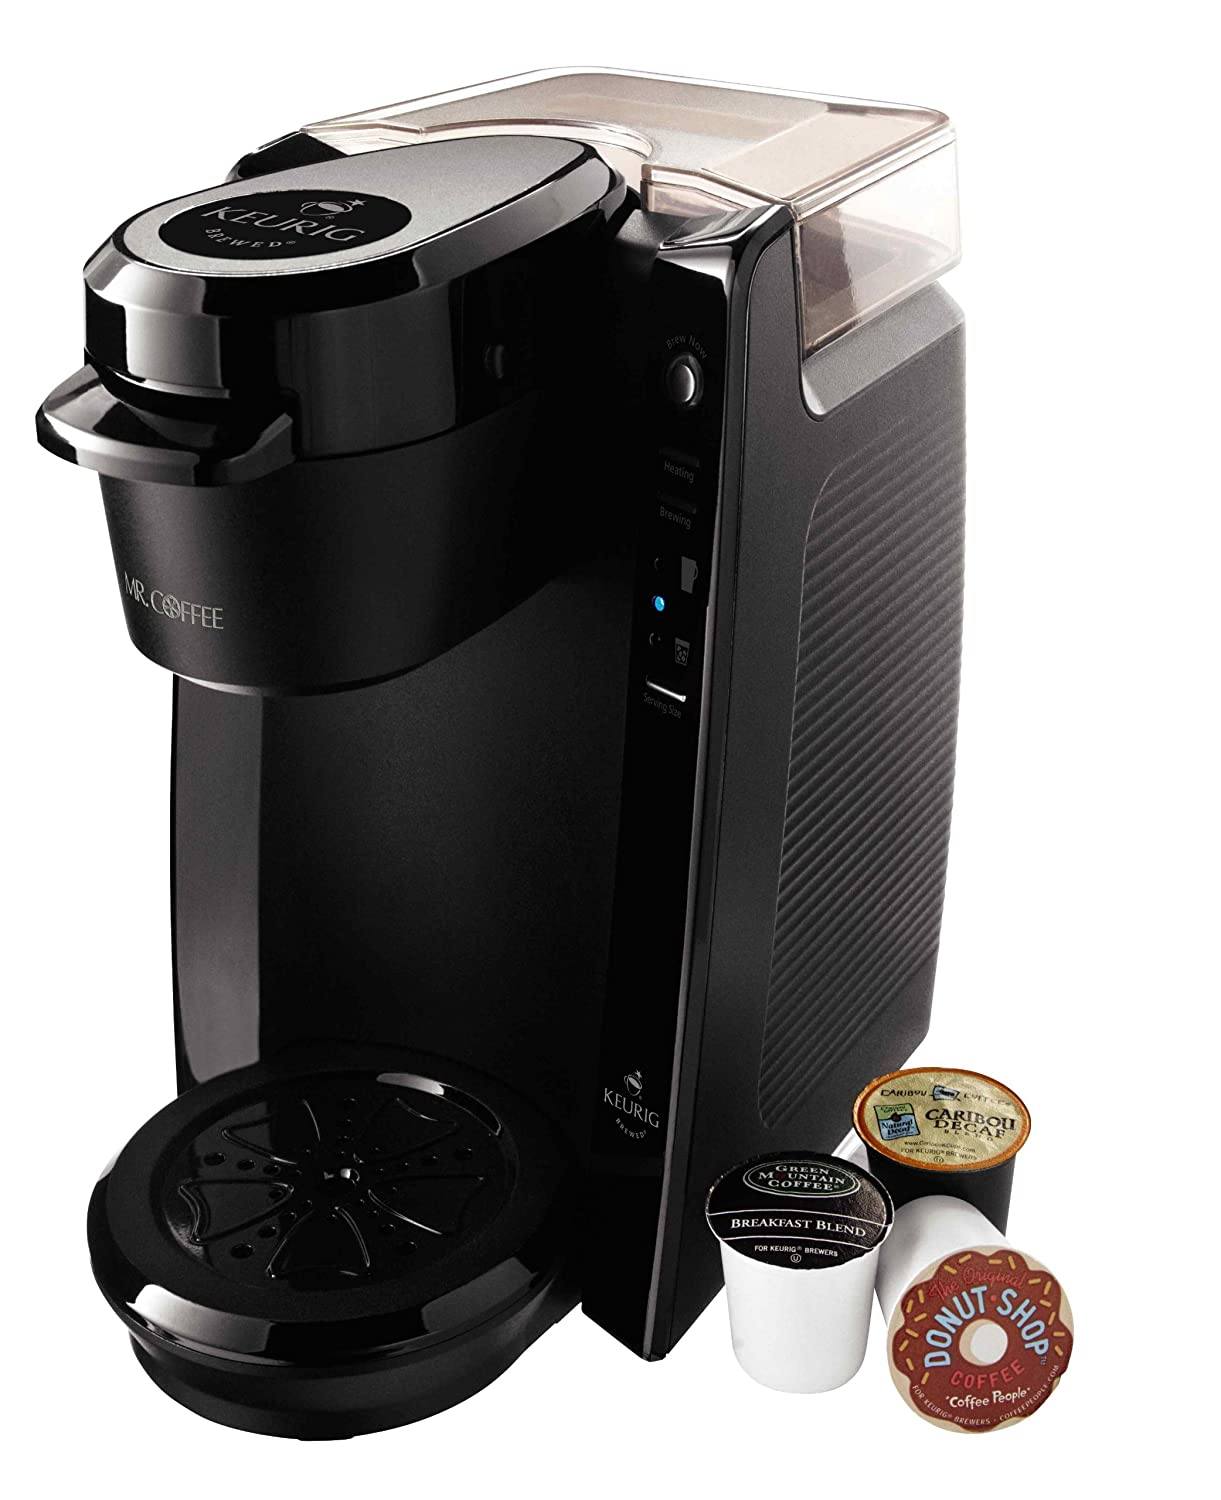 mr coffee bvmckg5001 single serve coffee brewer powered by keurig brewing tec new free shipping - Kcup Coffee Makers